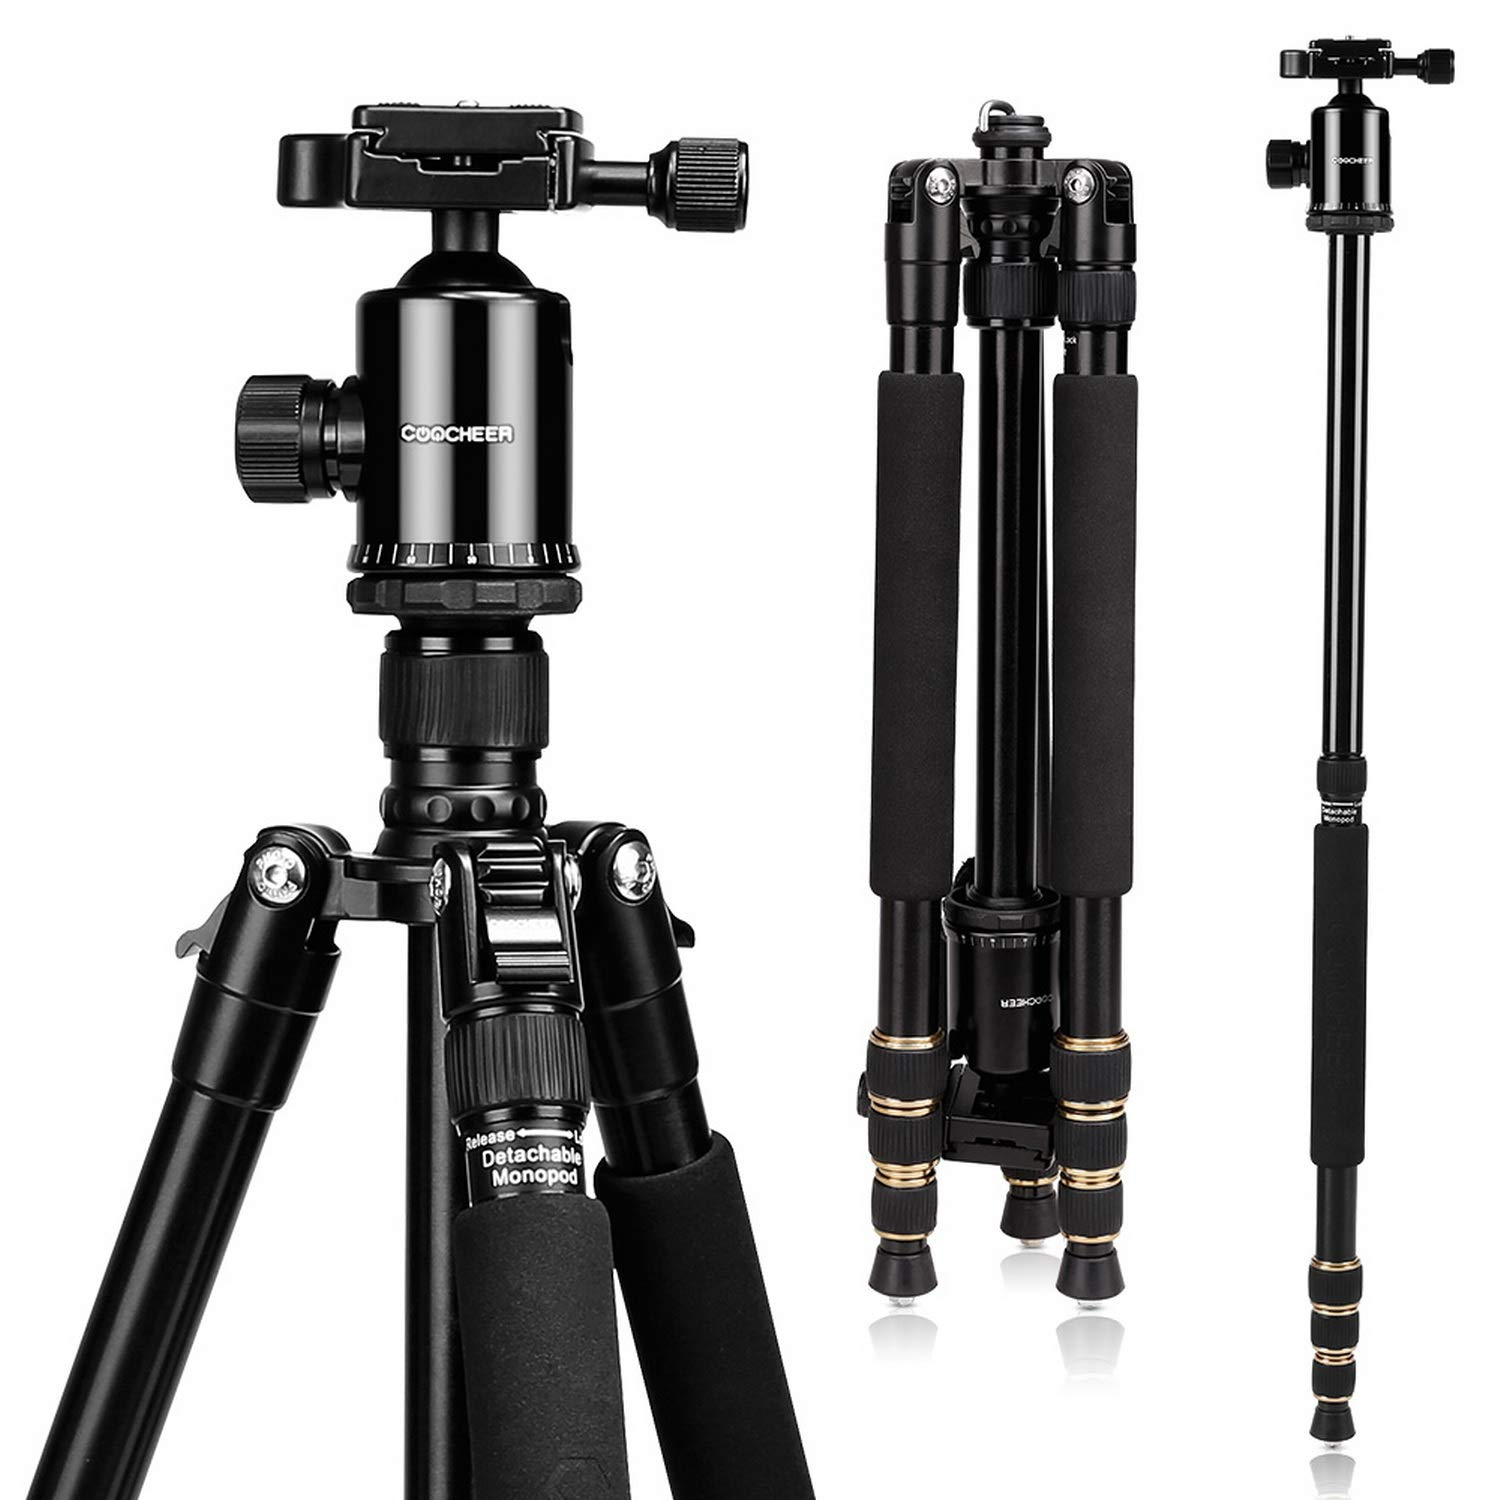 Camera Tripod, Lightweight Compact Tripod Monopod with 360 Degree Ball Head, Quick Release Plate + Bag